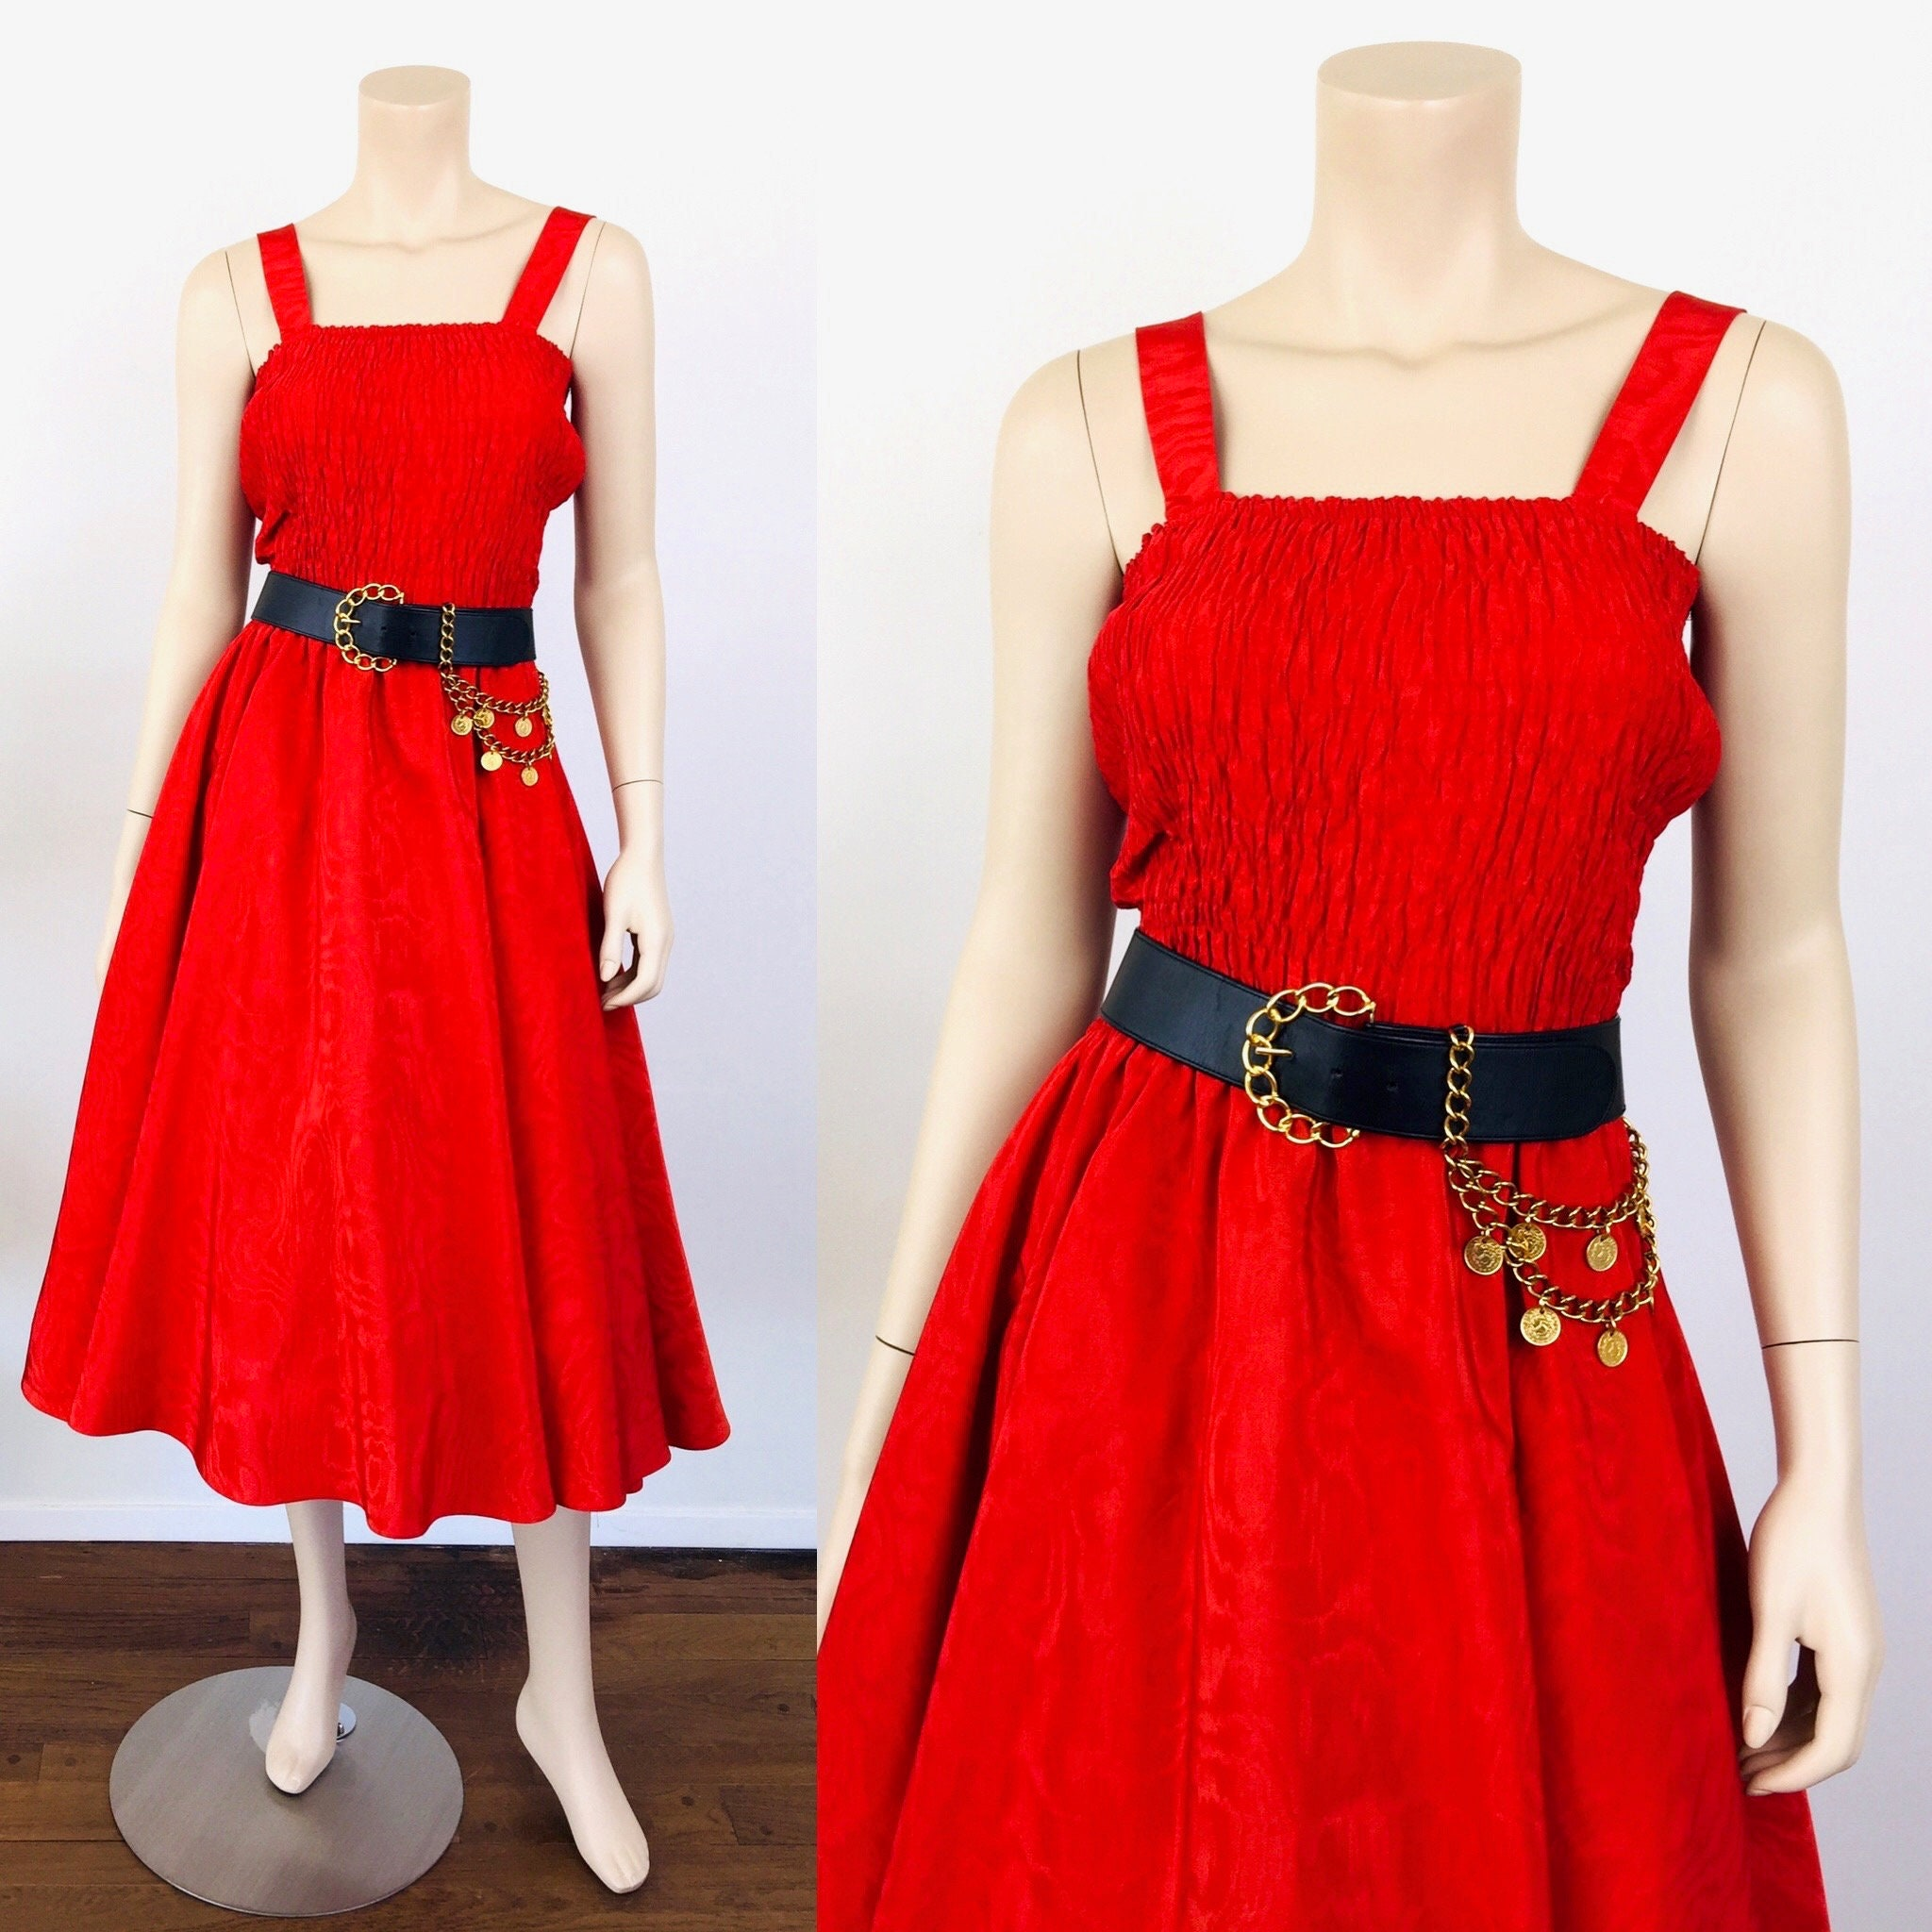 80s Dresses | Casual to Party Dresses Vintage 1980S Red Diane Freis Smocked Moire Taffeta Party Dress $20.00 AT vintagedancer.com